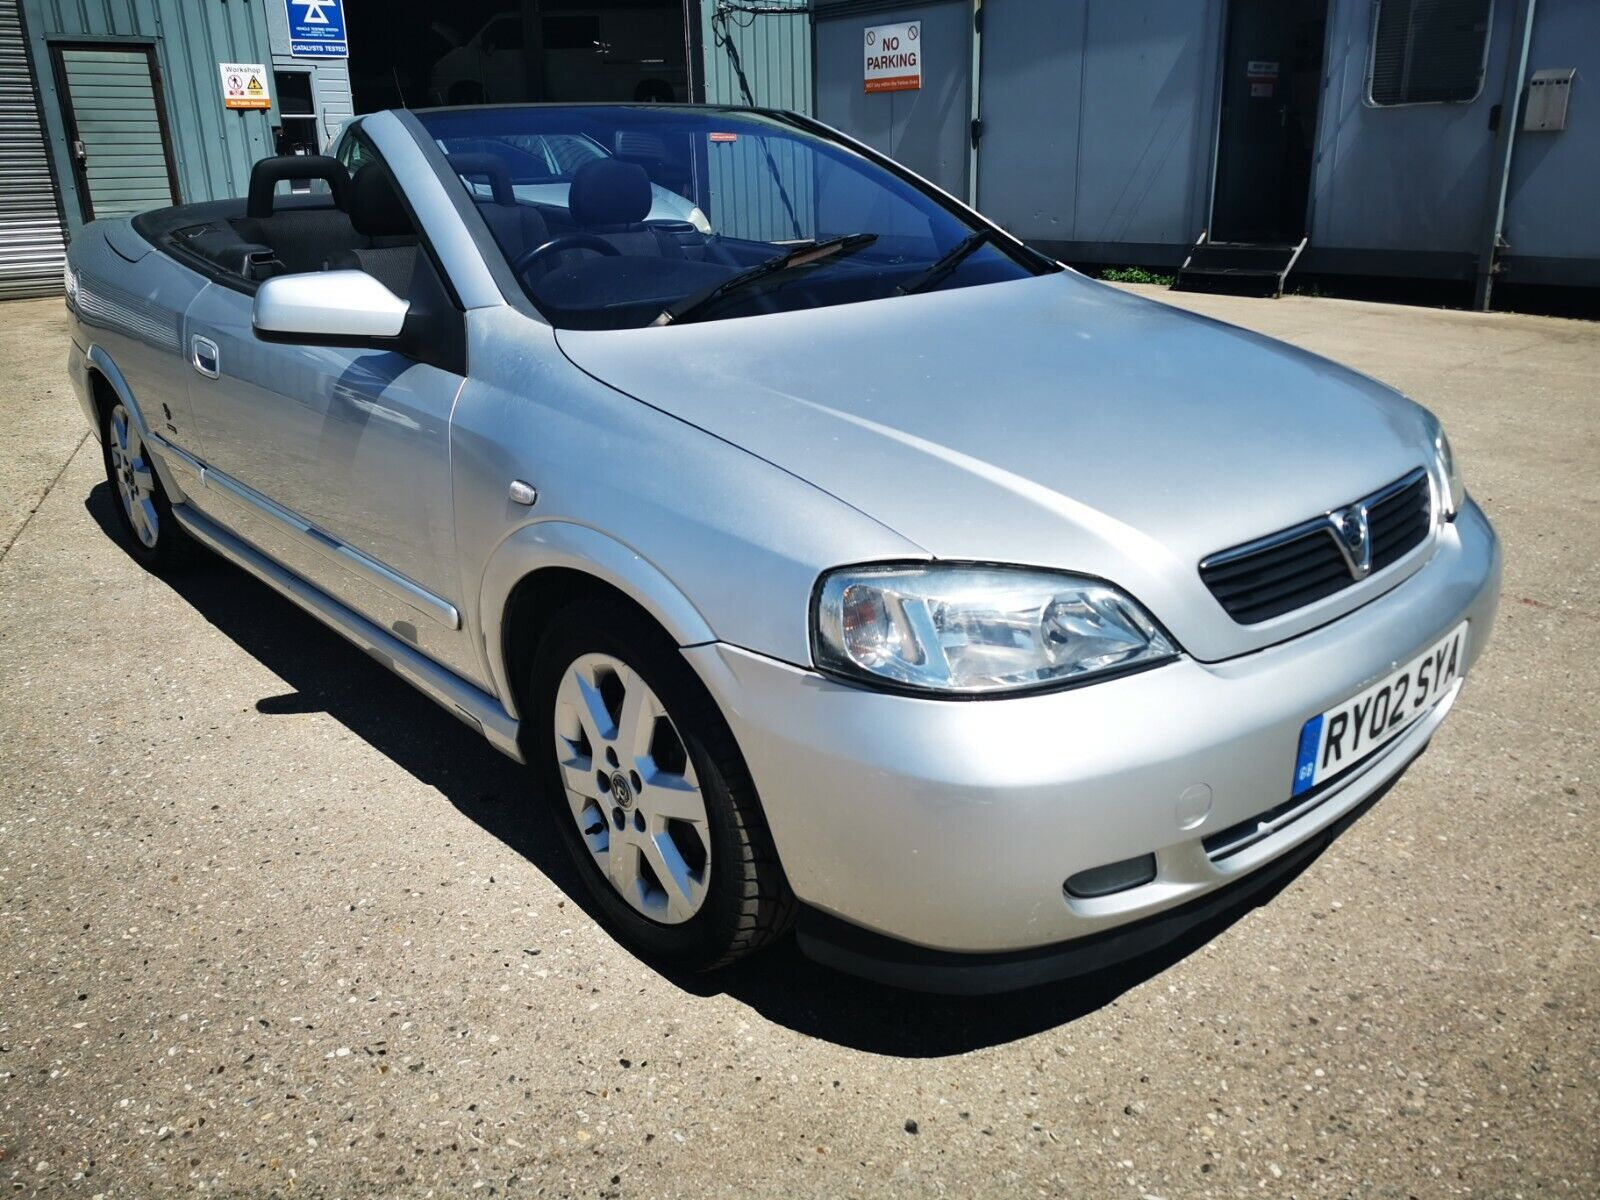 VAUXHALL-ASTRA-CONVERTIBLE-2002-SPARES-OR-REPAIR-PROJECT-REPAIRABLE-EXPORT